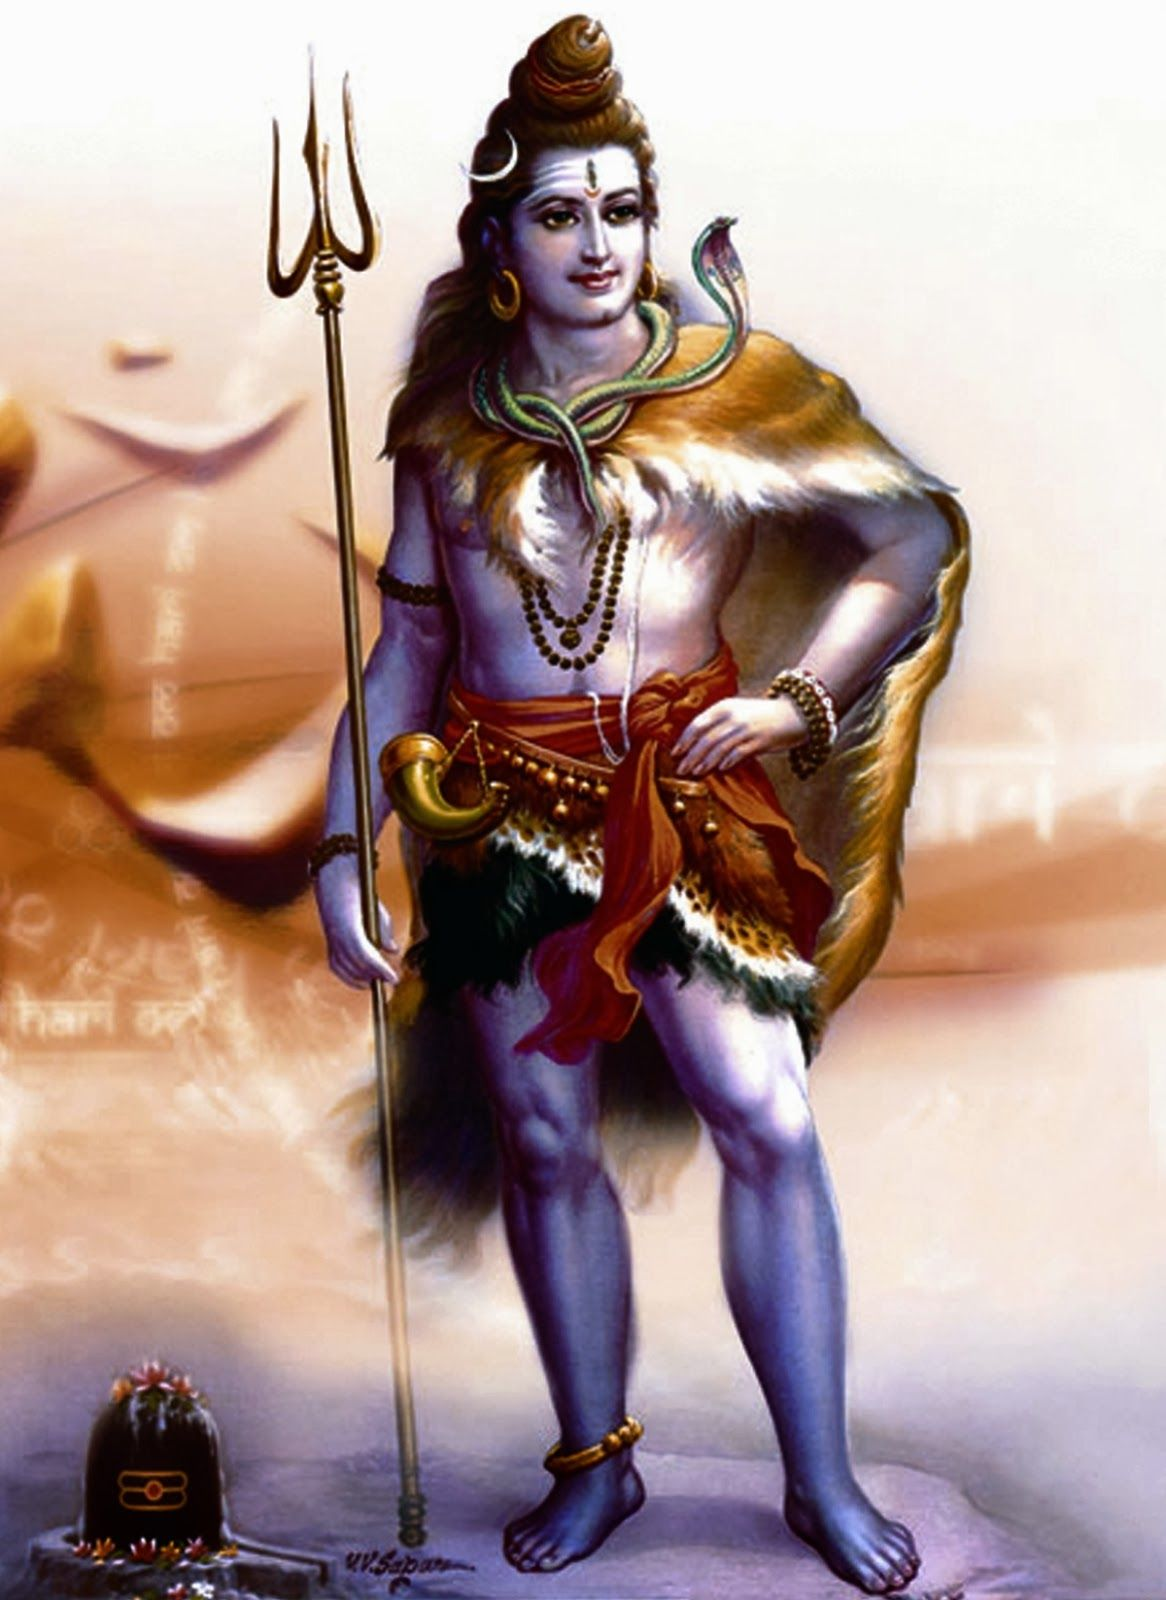 1166x1600 The Most Unique and Powerful Shiva Images Collection on the Internet!